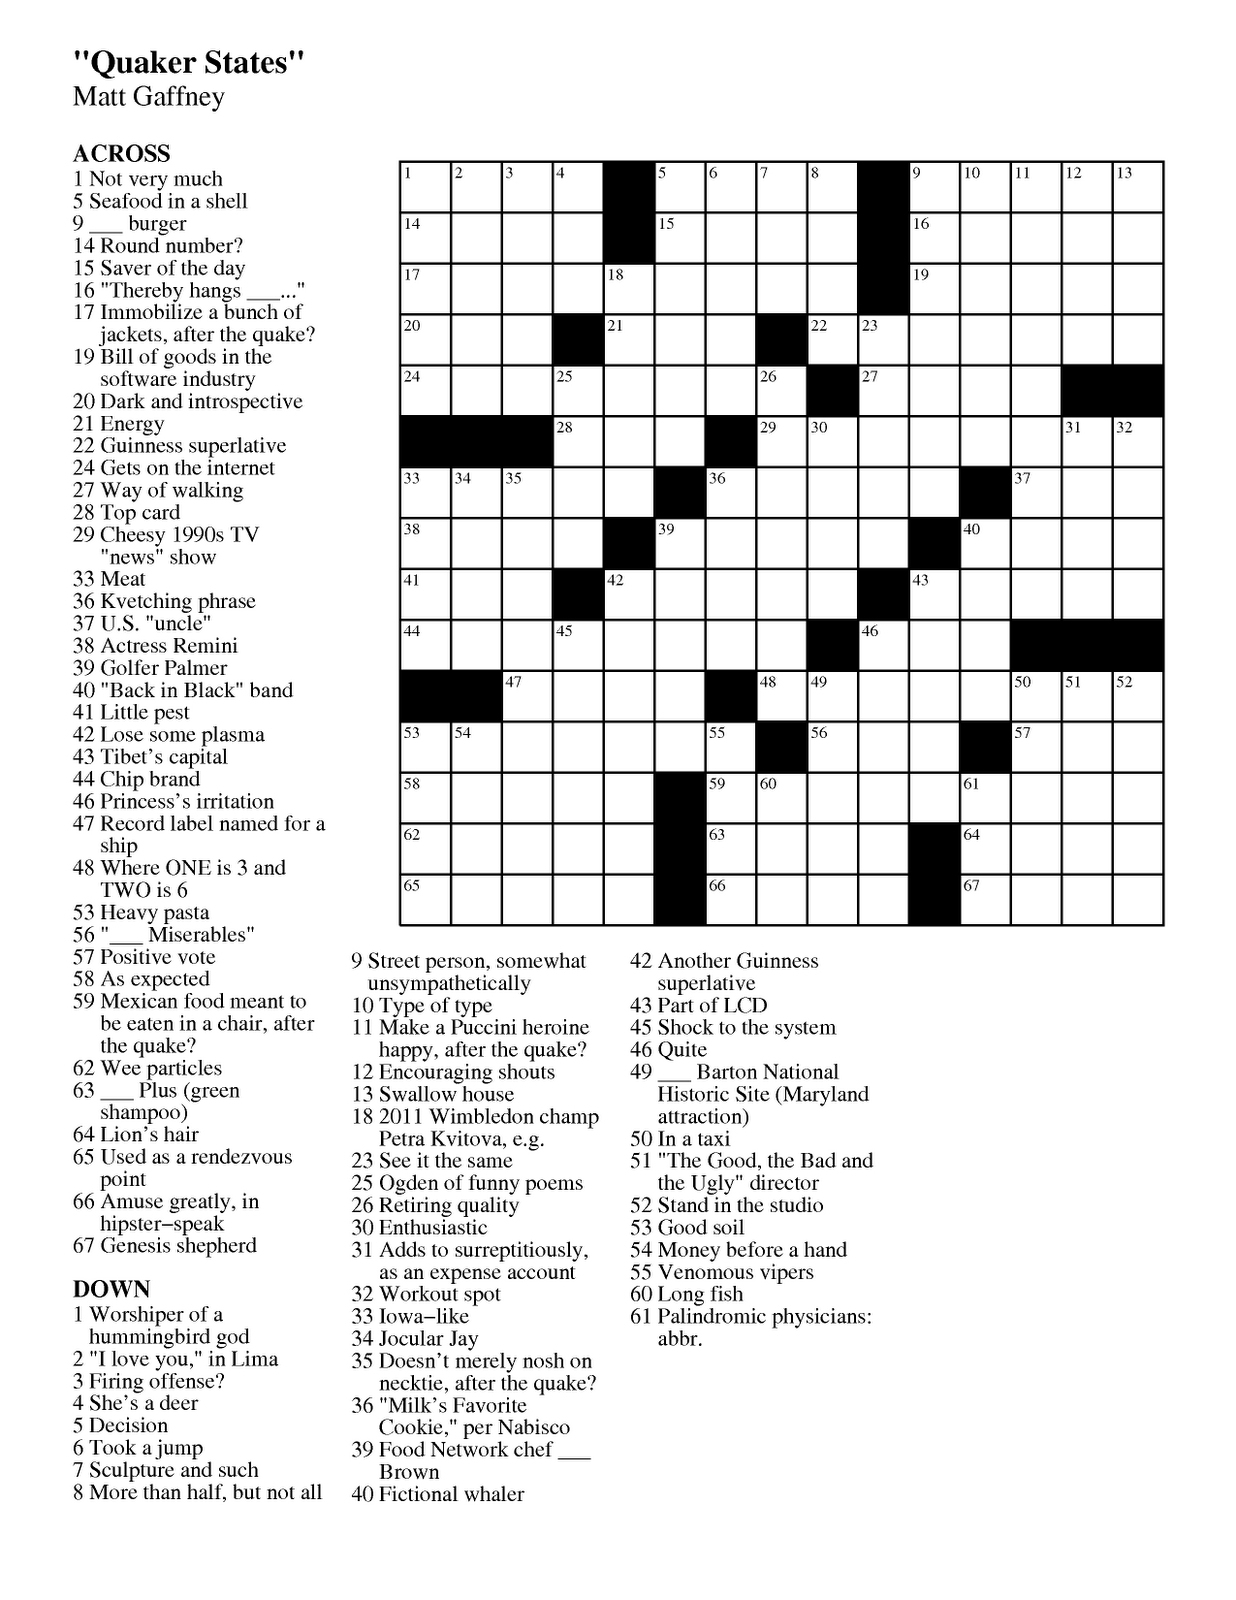 Free Downloadable Crossword Puzzles